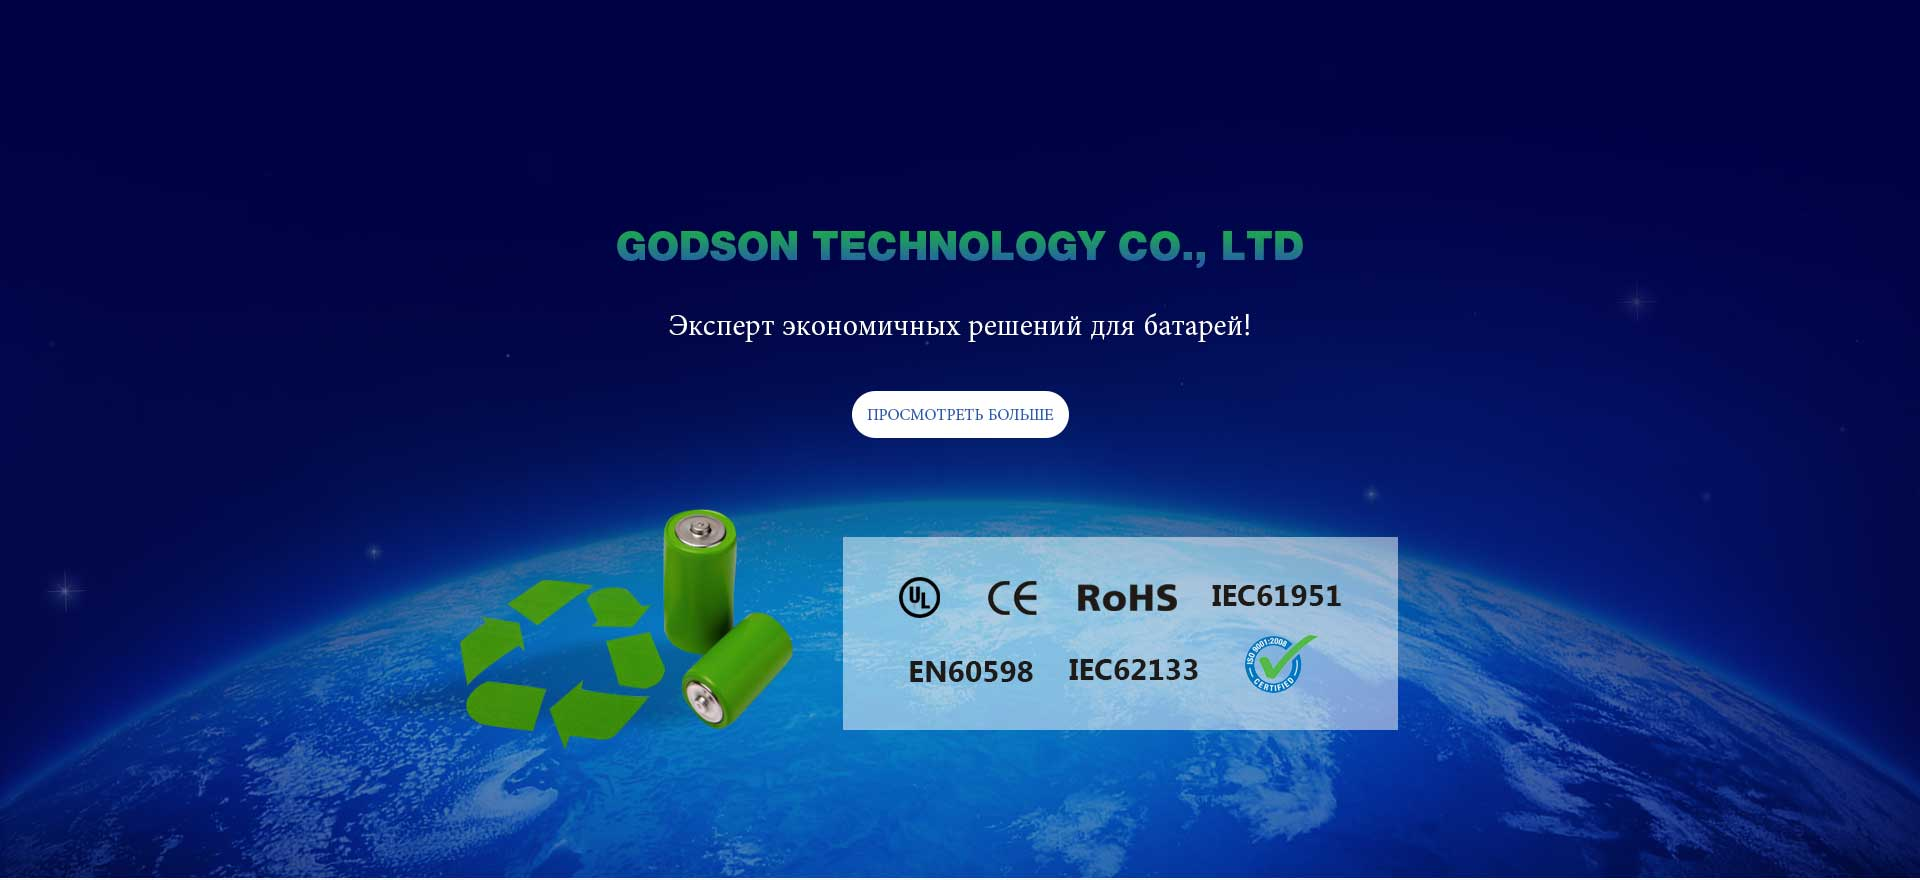 Godson Technology Co., Ltd.